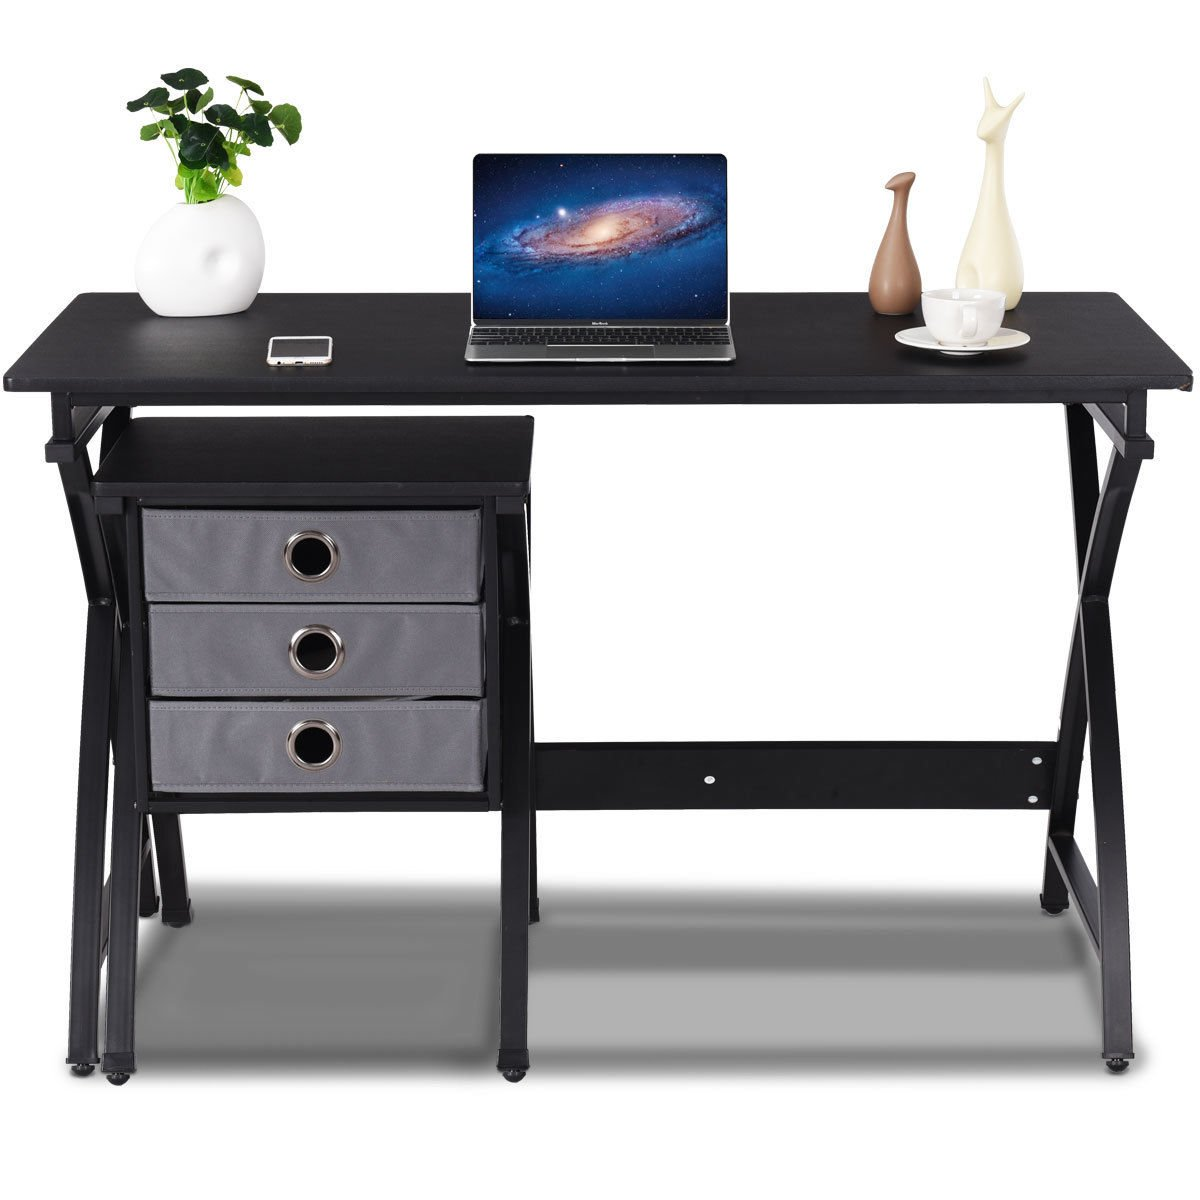 Tangkula Computer Desk Wood Top Writing Desk with Drawer Home Office Furniture (Black)